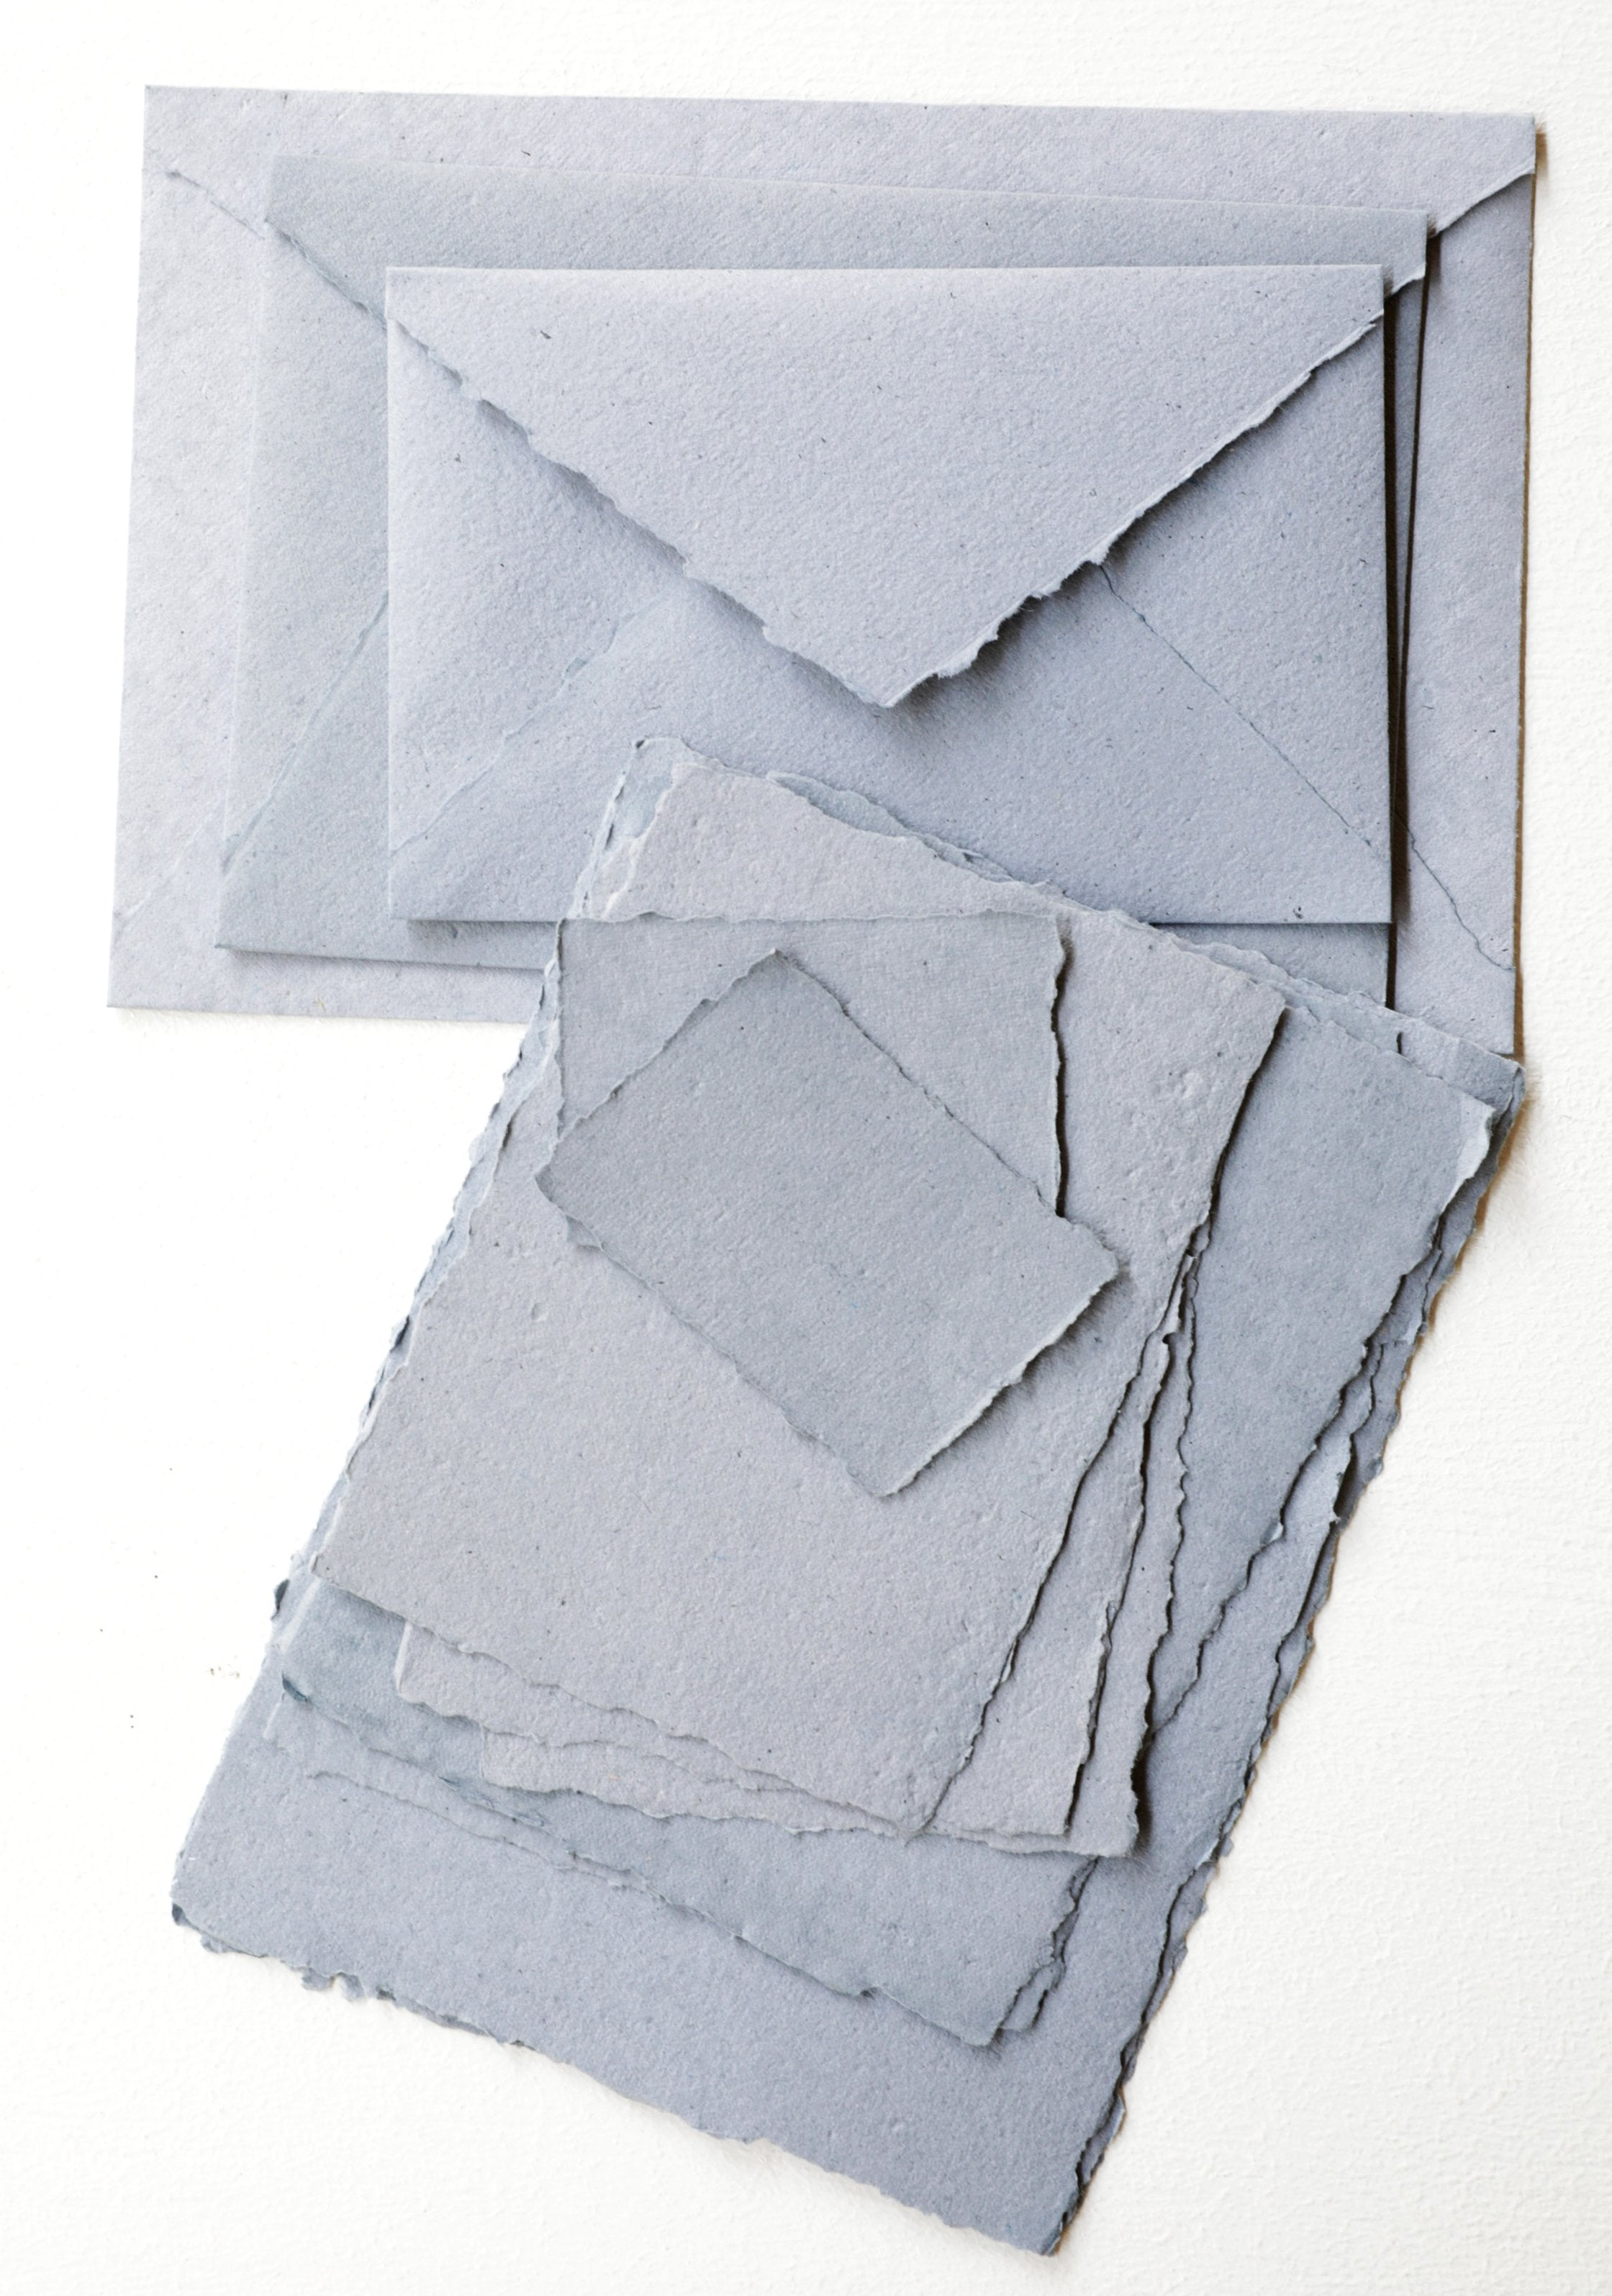 Dusty Blue Handmade Recycled Envelopes - (Deckle Edge or Cut Edge) - Feathers and Stone